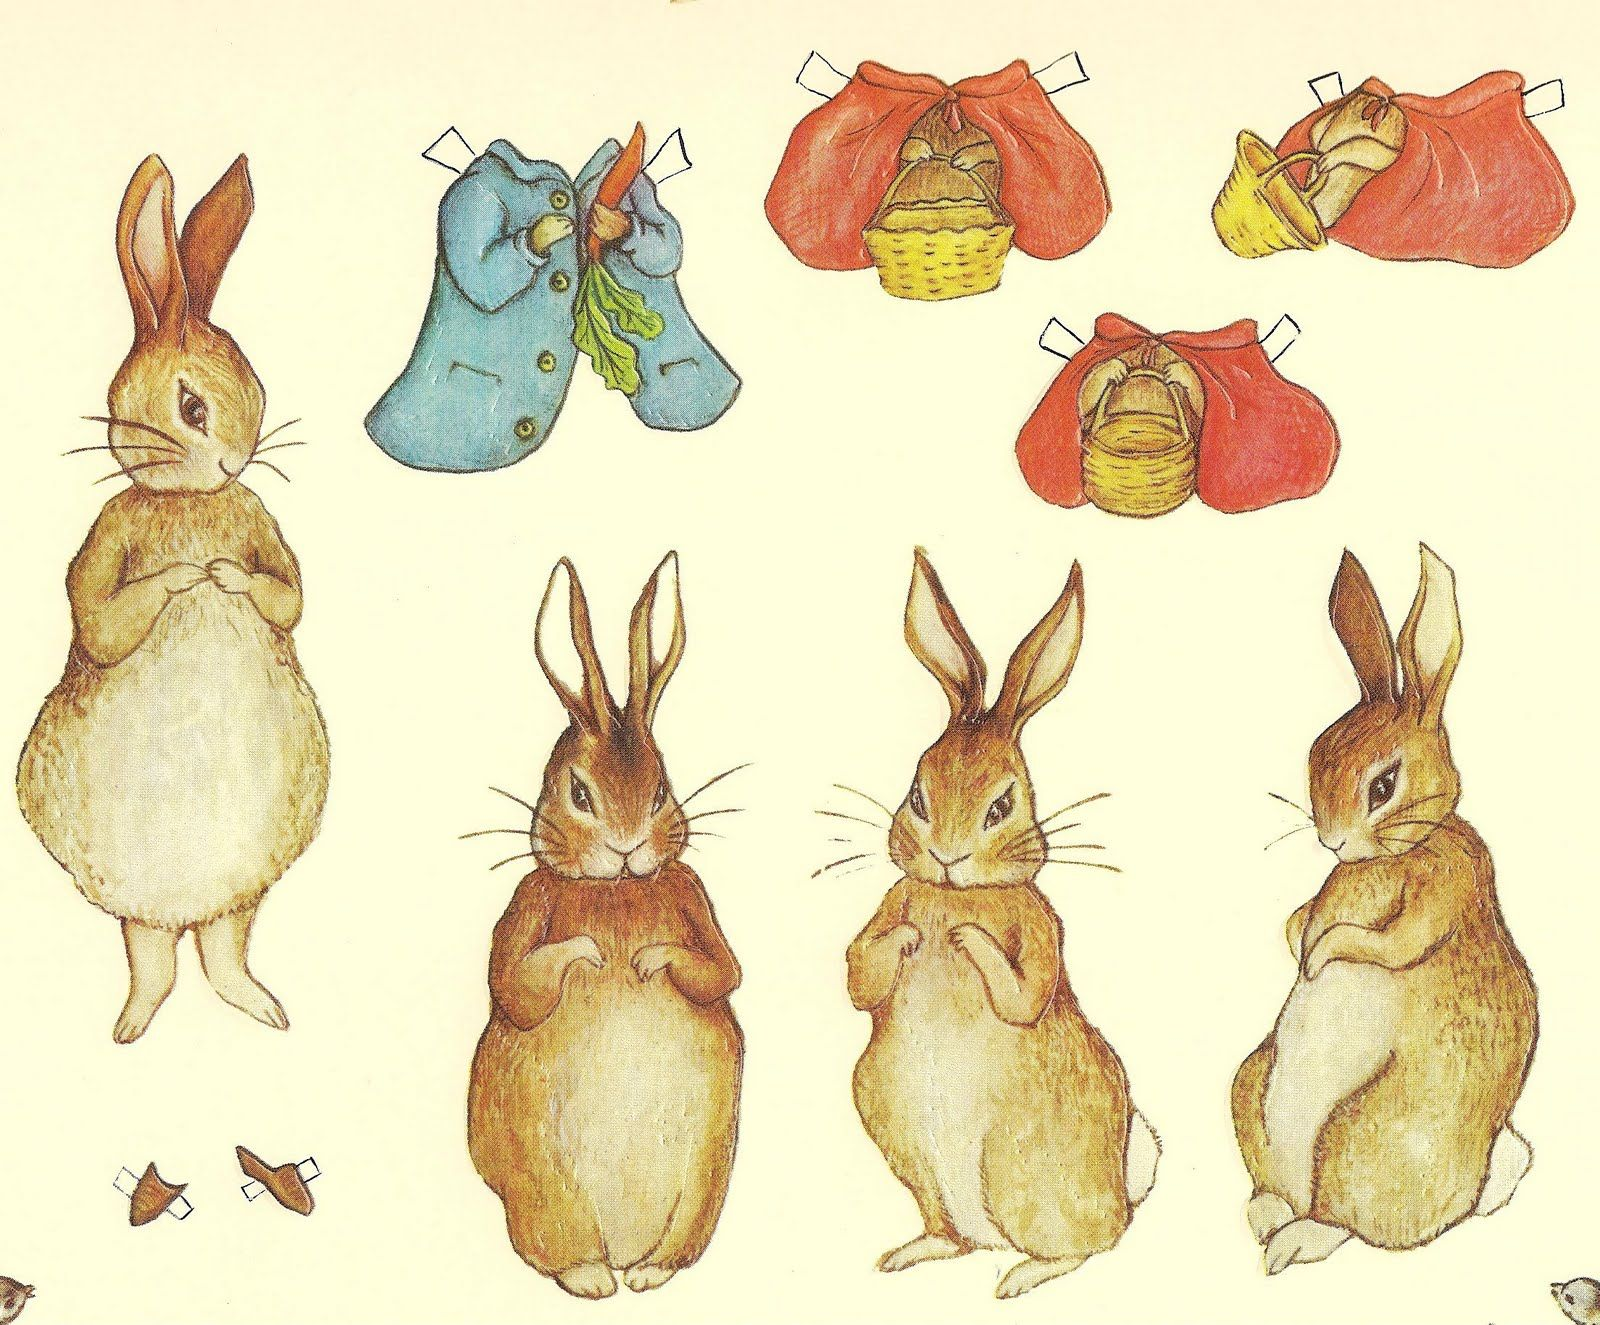 Mostly Paper Dolls: A RABBIT A DAY Peter Rabbit 02